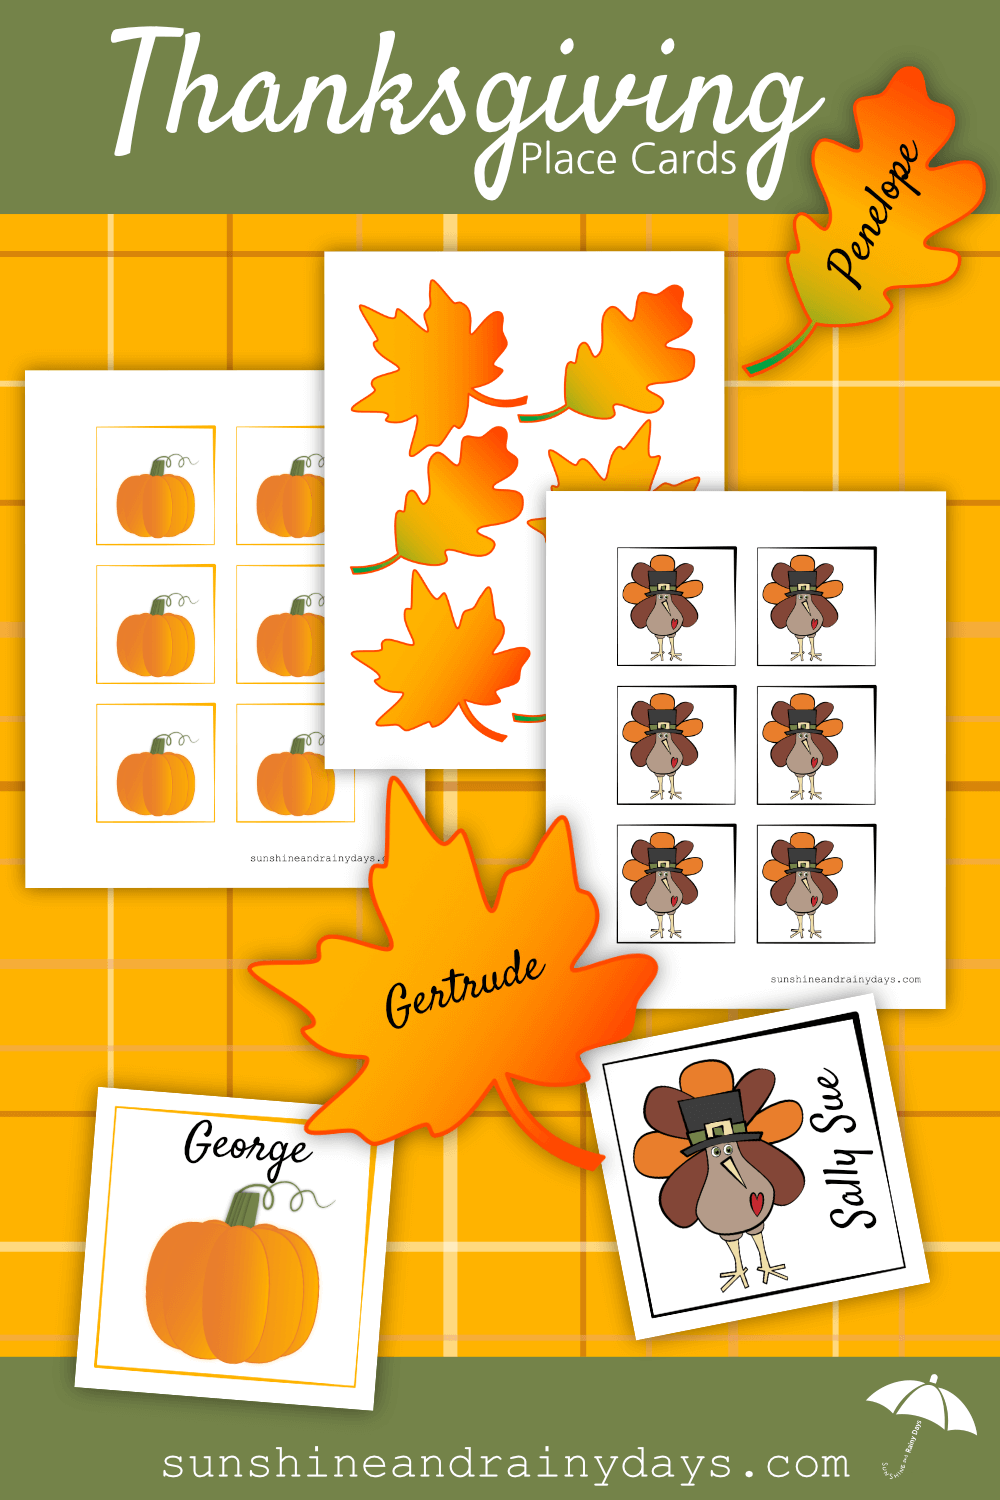 photo relating to Thanksgiving Place Cards Printable known as Thanksgiving Position Card Printable -